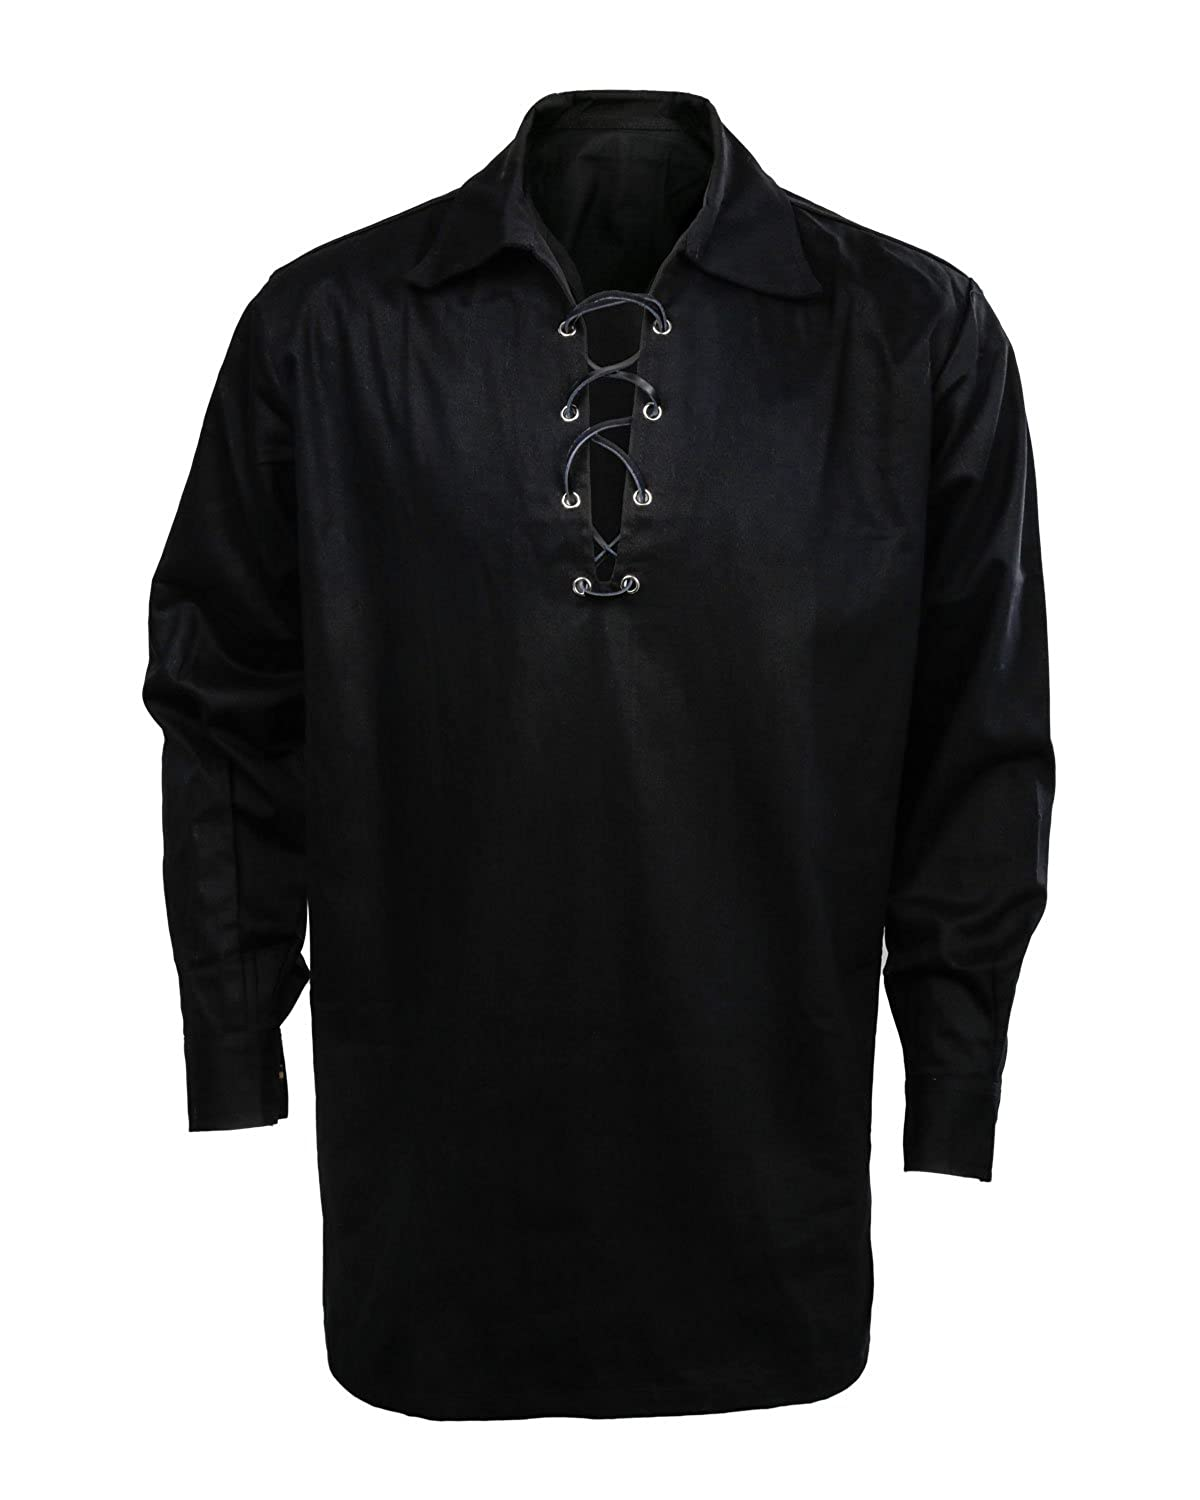 Jacobite Ghillie Shirt Black Pirate